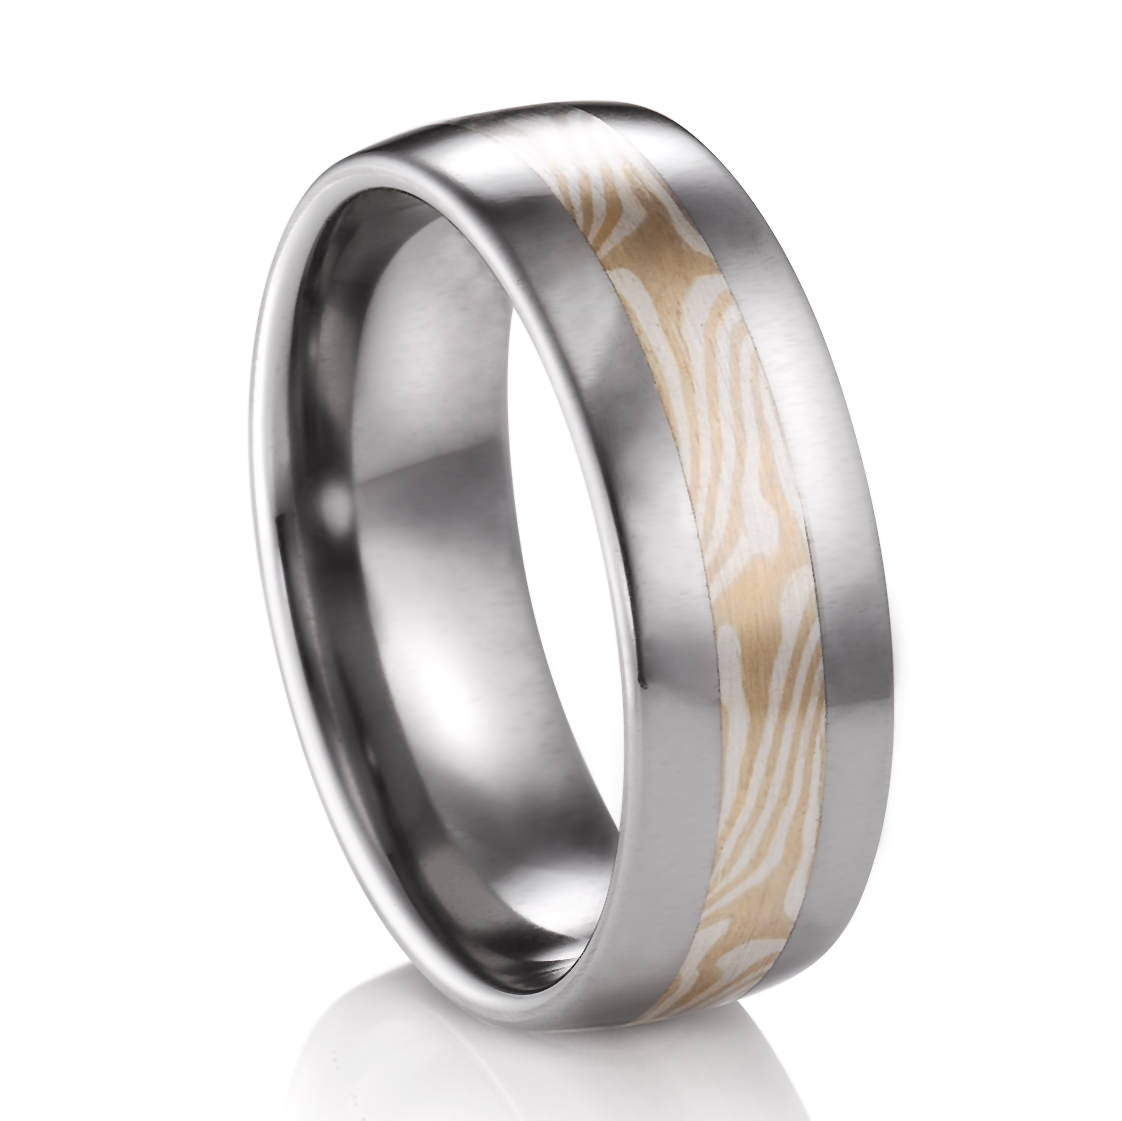 gane jewelry by rings johan copper and mokume titanium with ring silver products